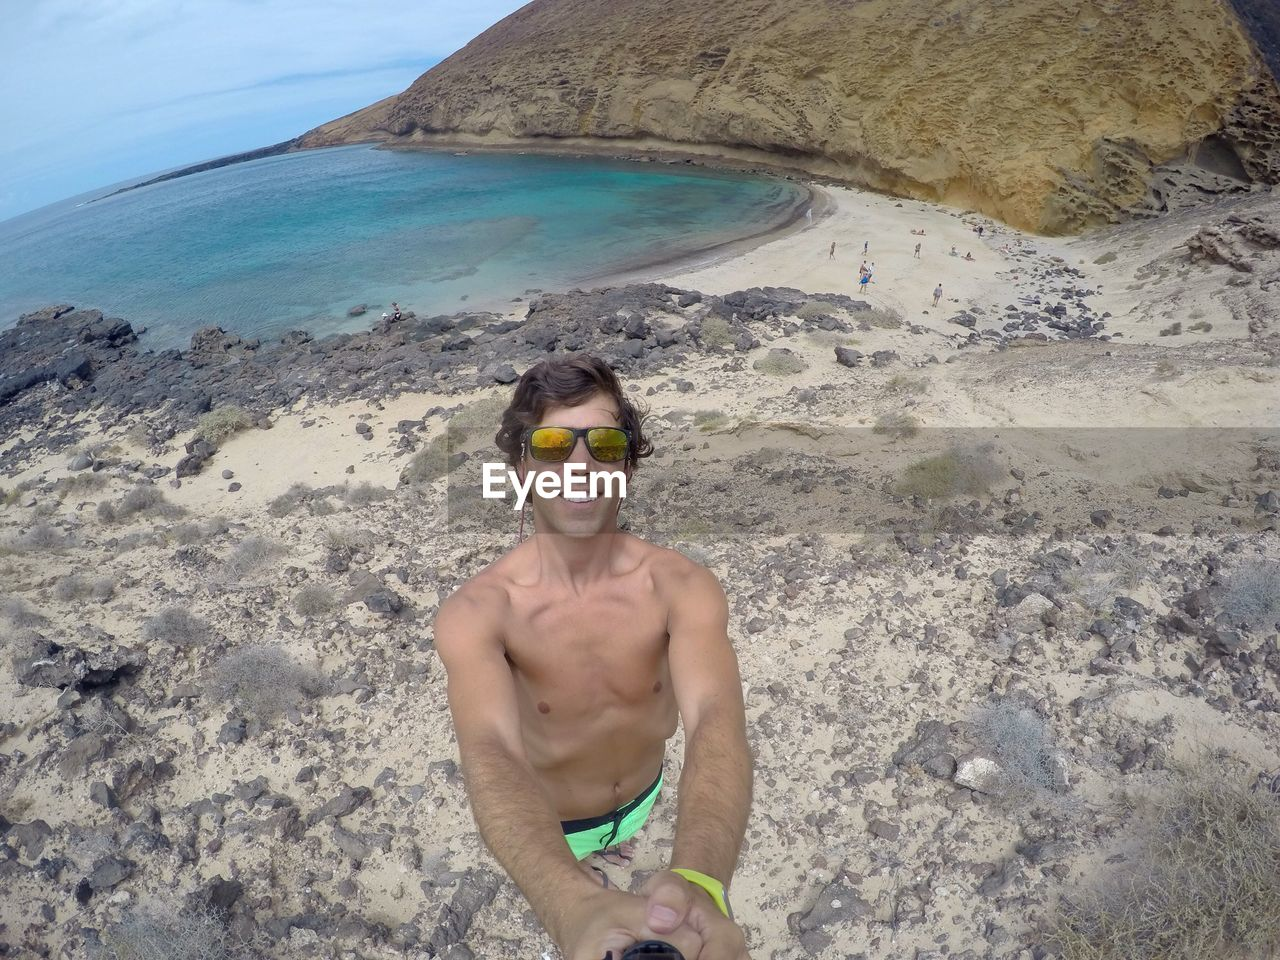 Man taking selfie with monopod at beach